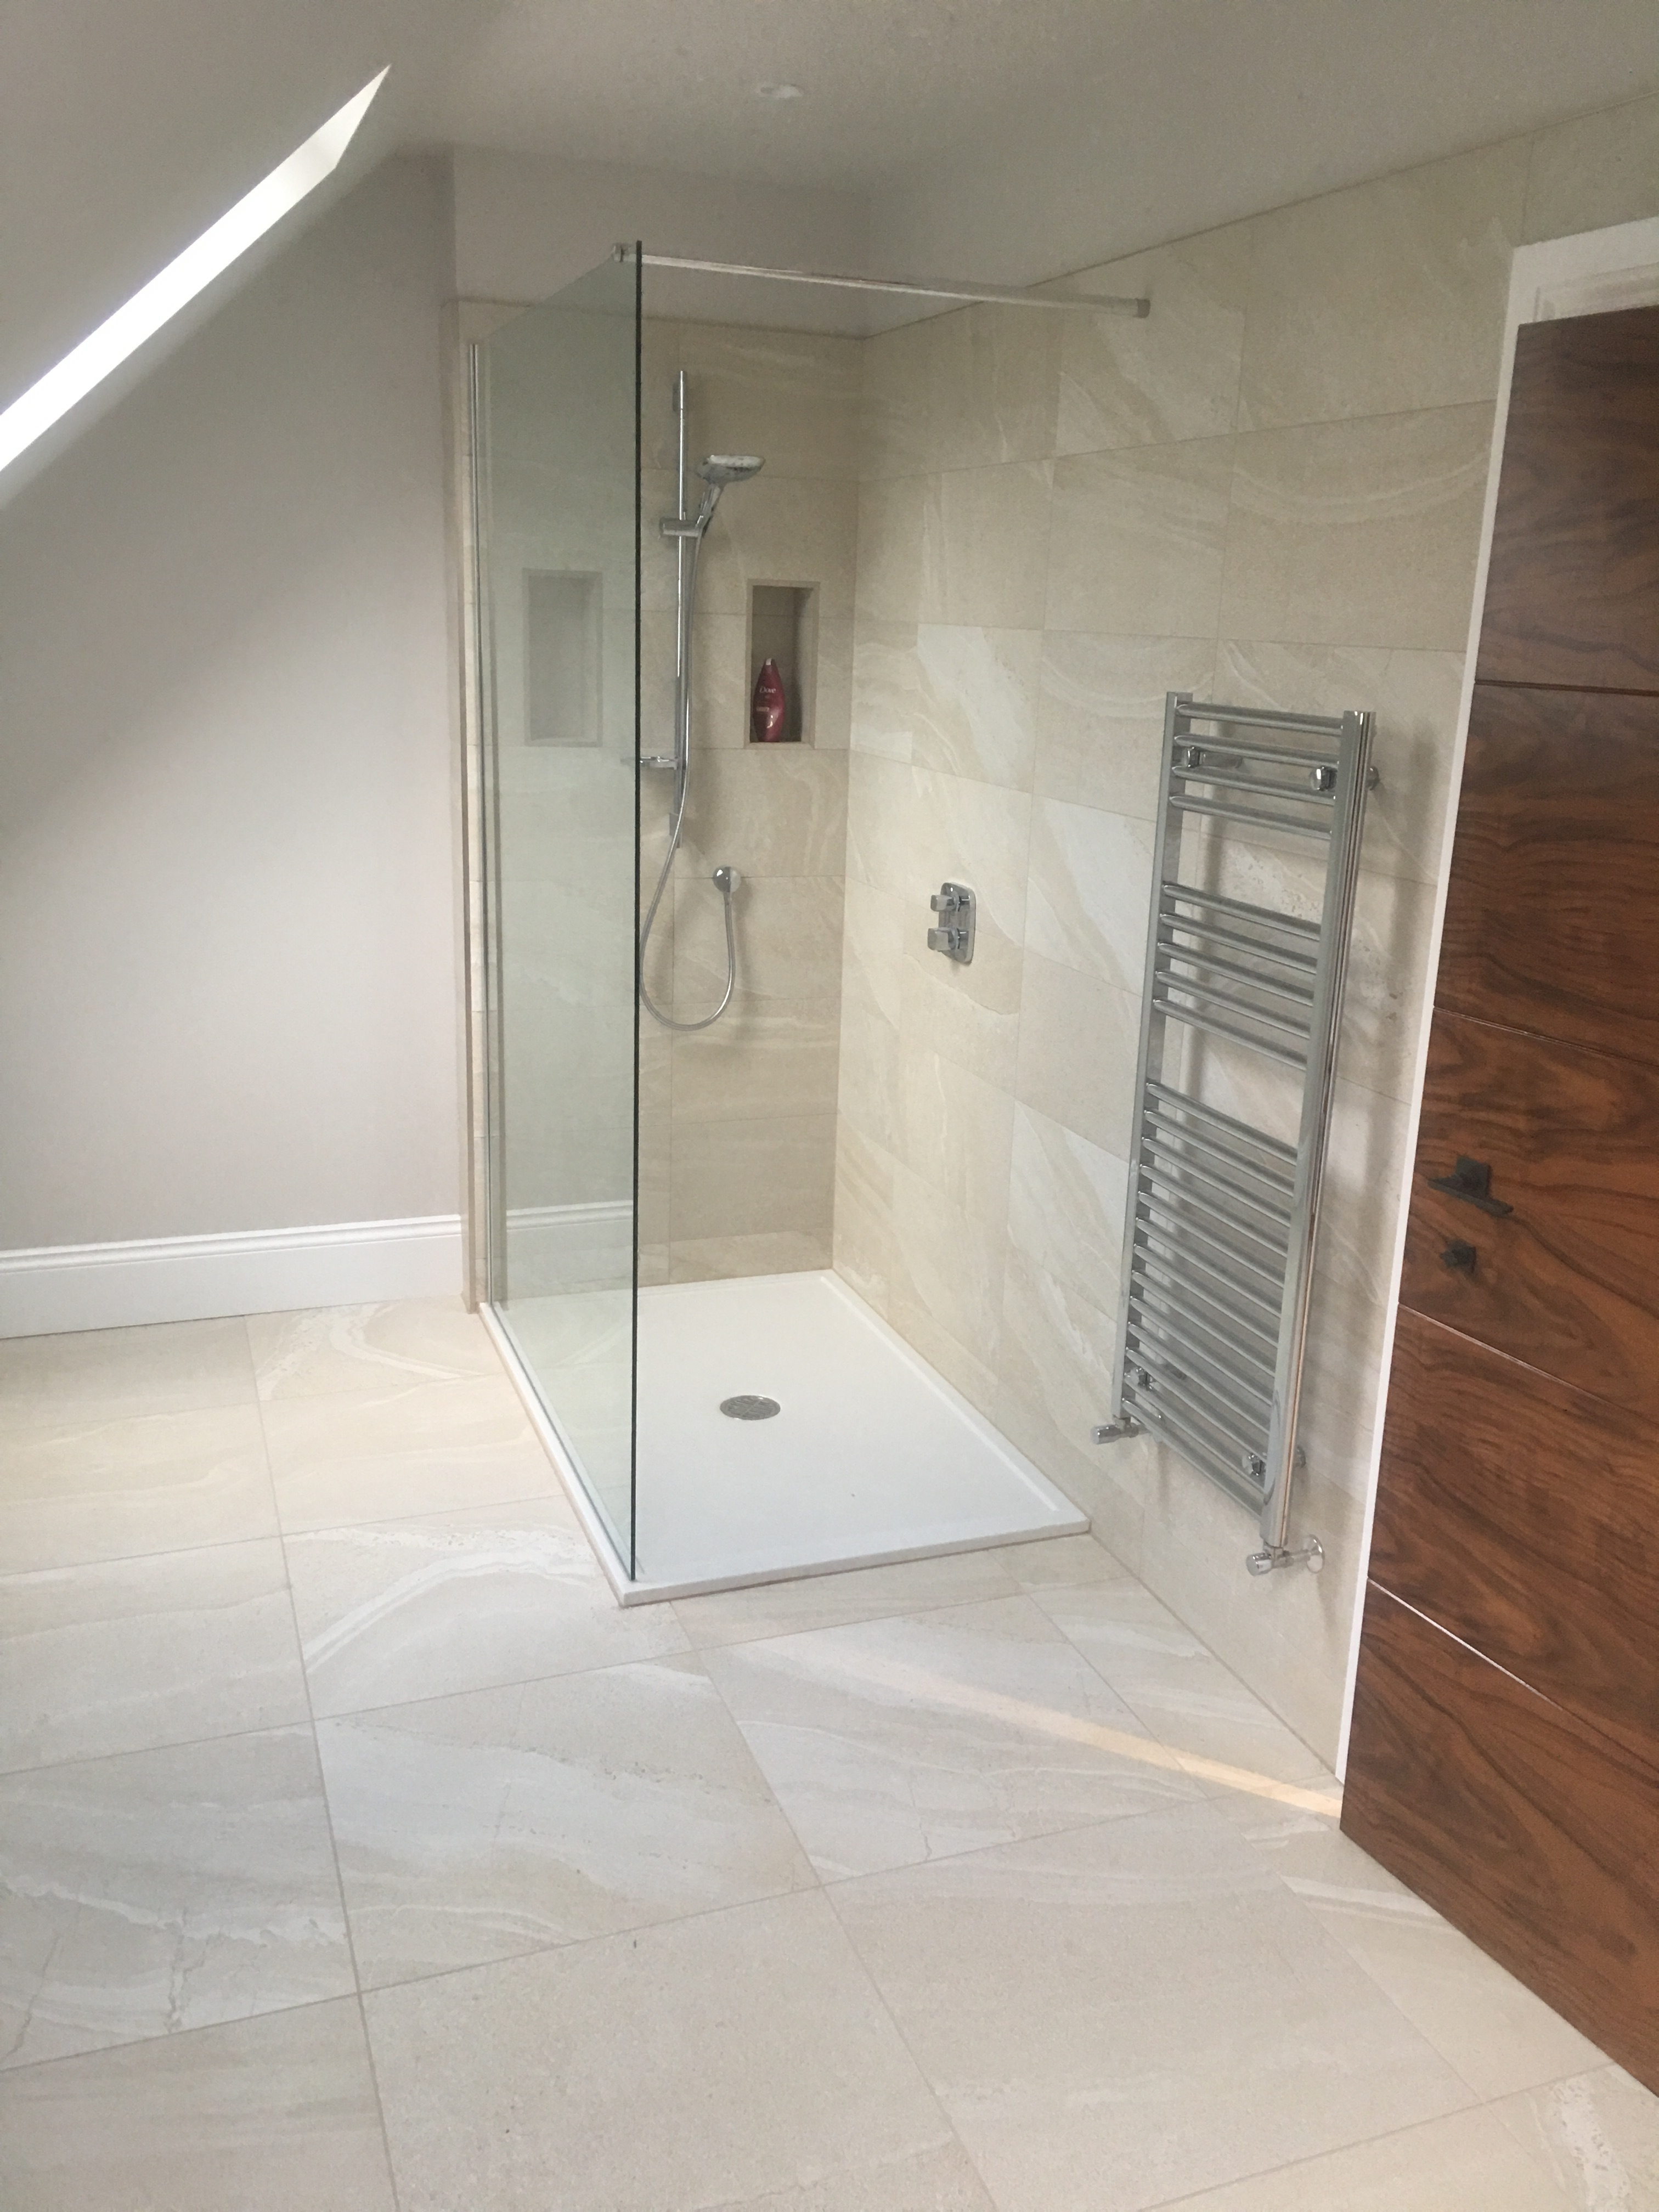 Bal provides solution for cheshire mansion tilezine a total of 400sq m of tiling was completed on both the ground and first floor of the property including the kitchen four bathrooms and a cloak room over a dailygadgetfo Gallery